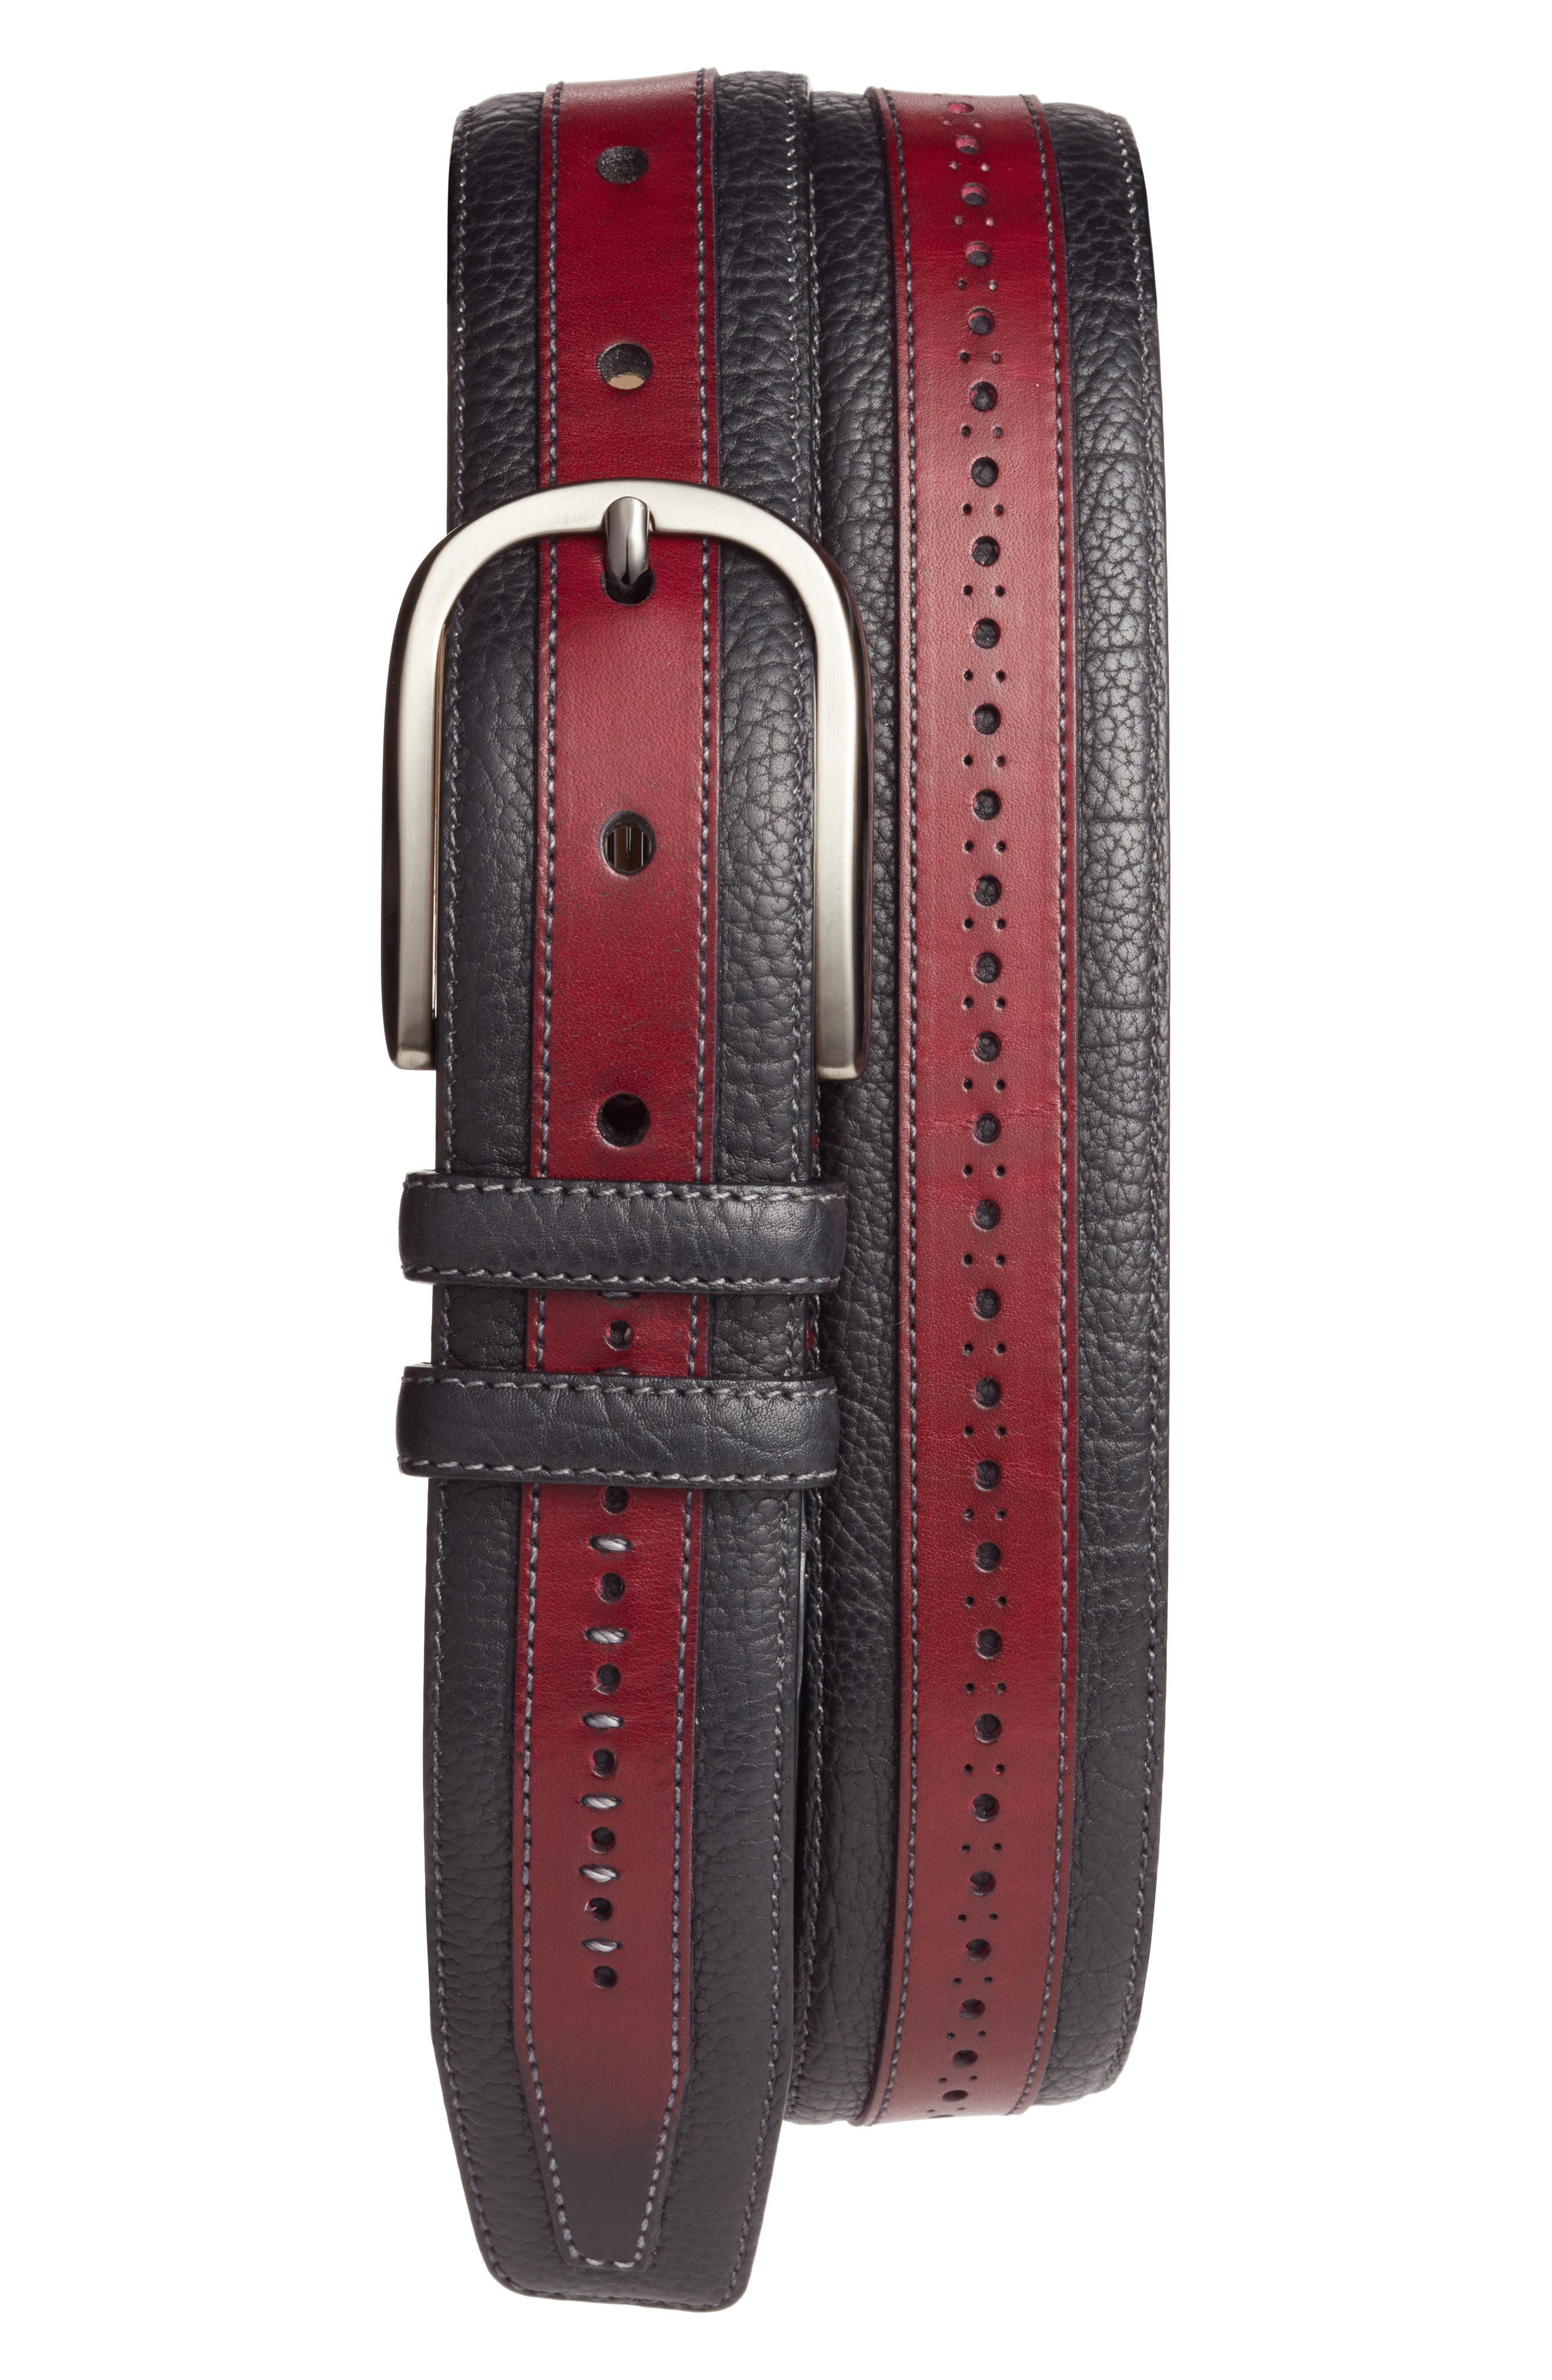 Palma Leather Belt,                             Main thumbnail 1, color,                             BURGUNDY/ BLACK